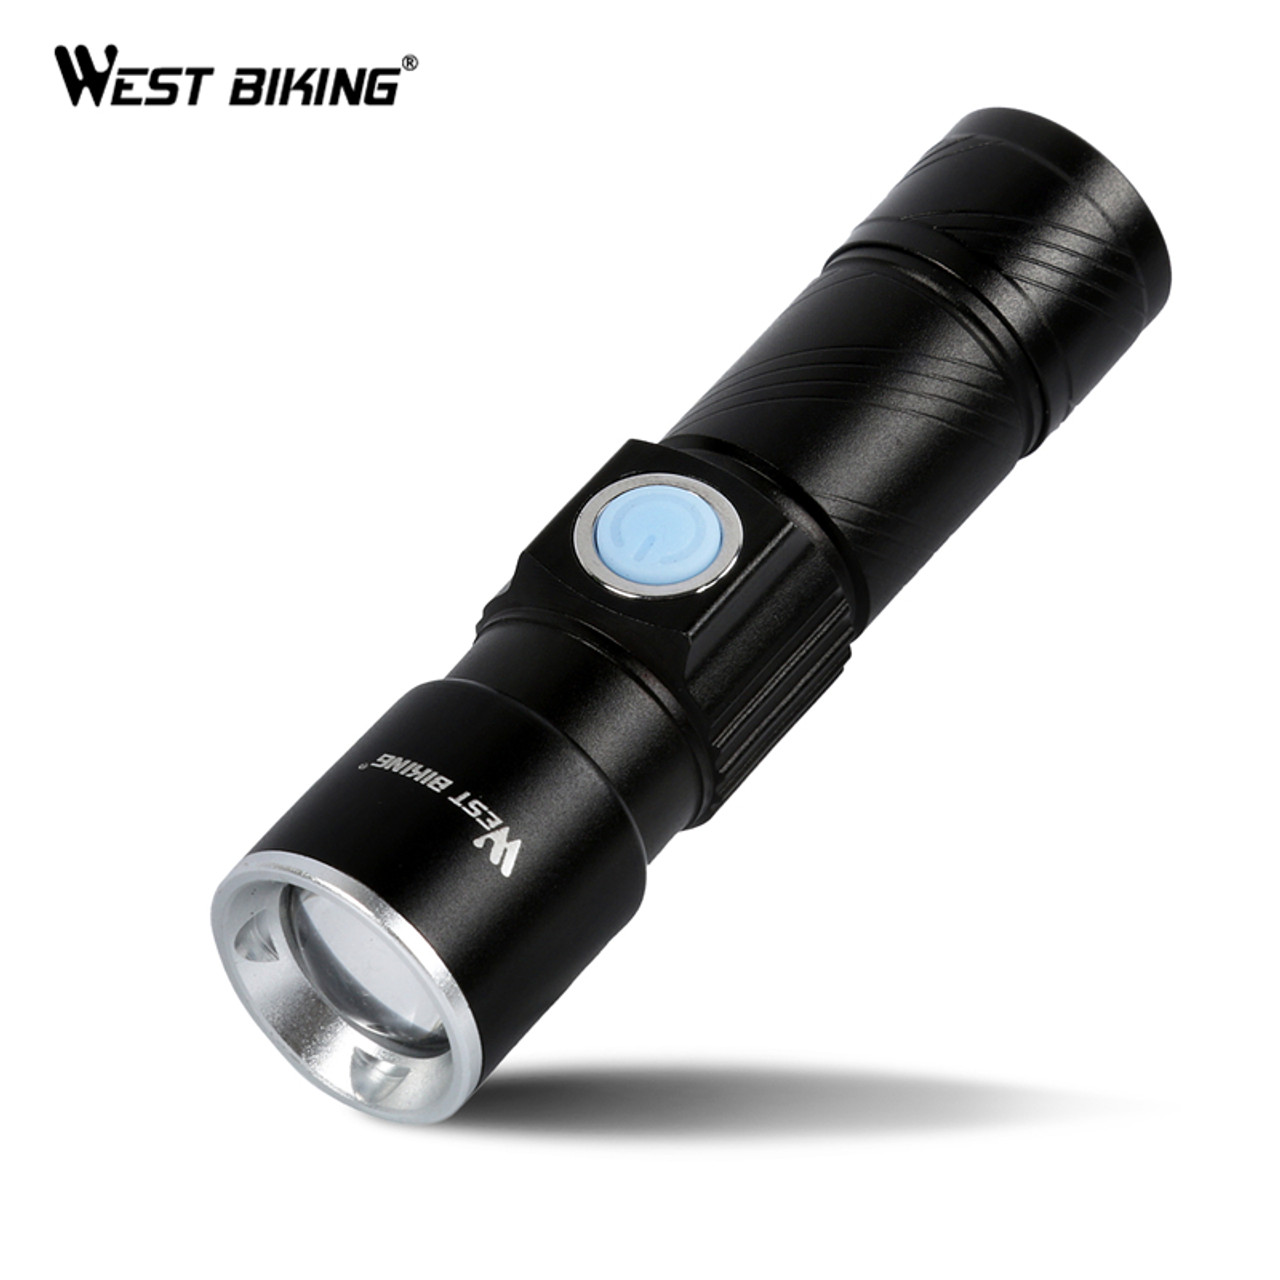 USB Rechargeable CREE LED Bicycle Bright Bike Front Headlight Light Lamp